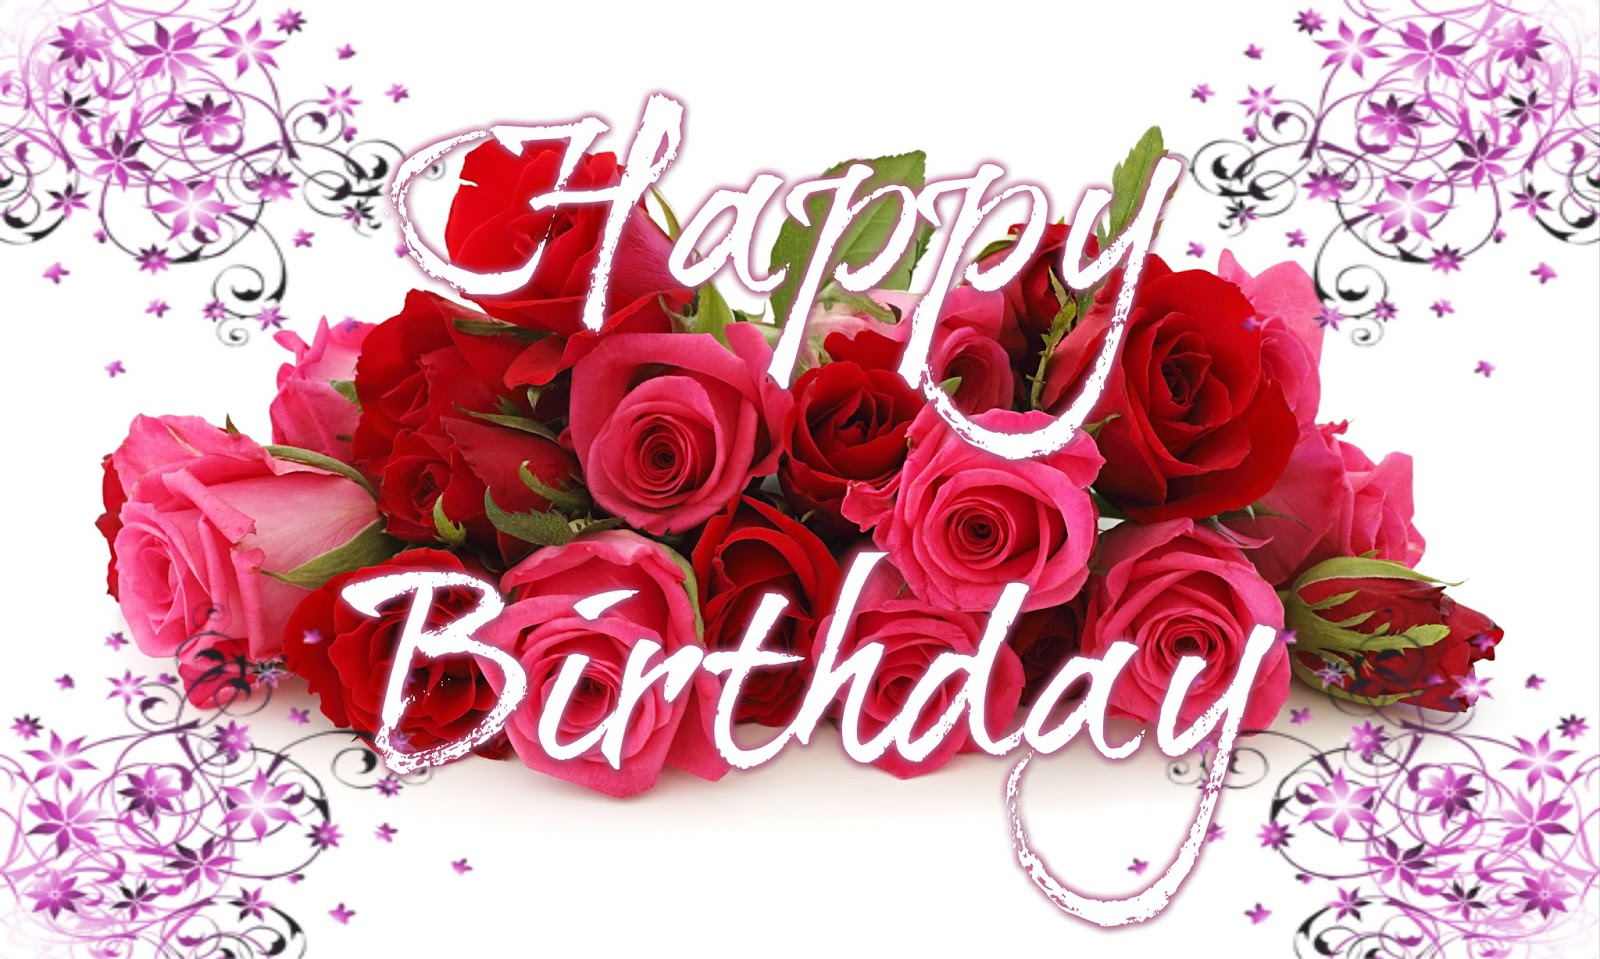 happy birthday wishes images download ; happy%252Bbirthday%252Bwishes%252Bimages%252Bdownload%252Bhd%252B%25252812%252529